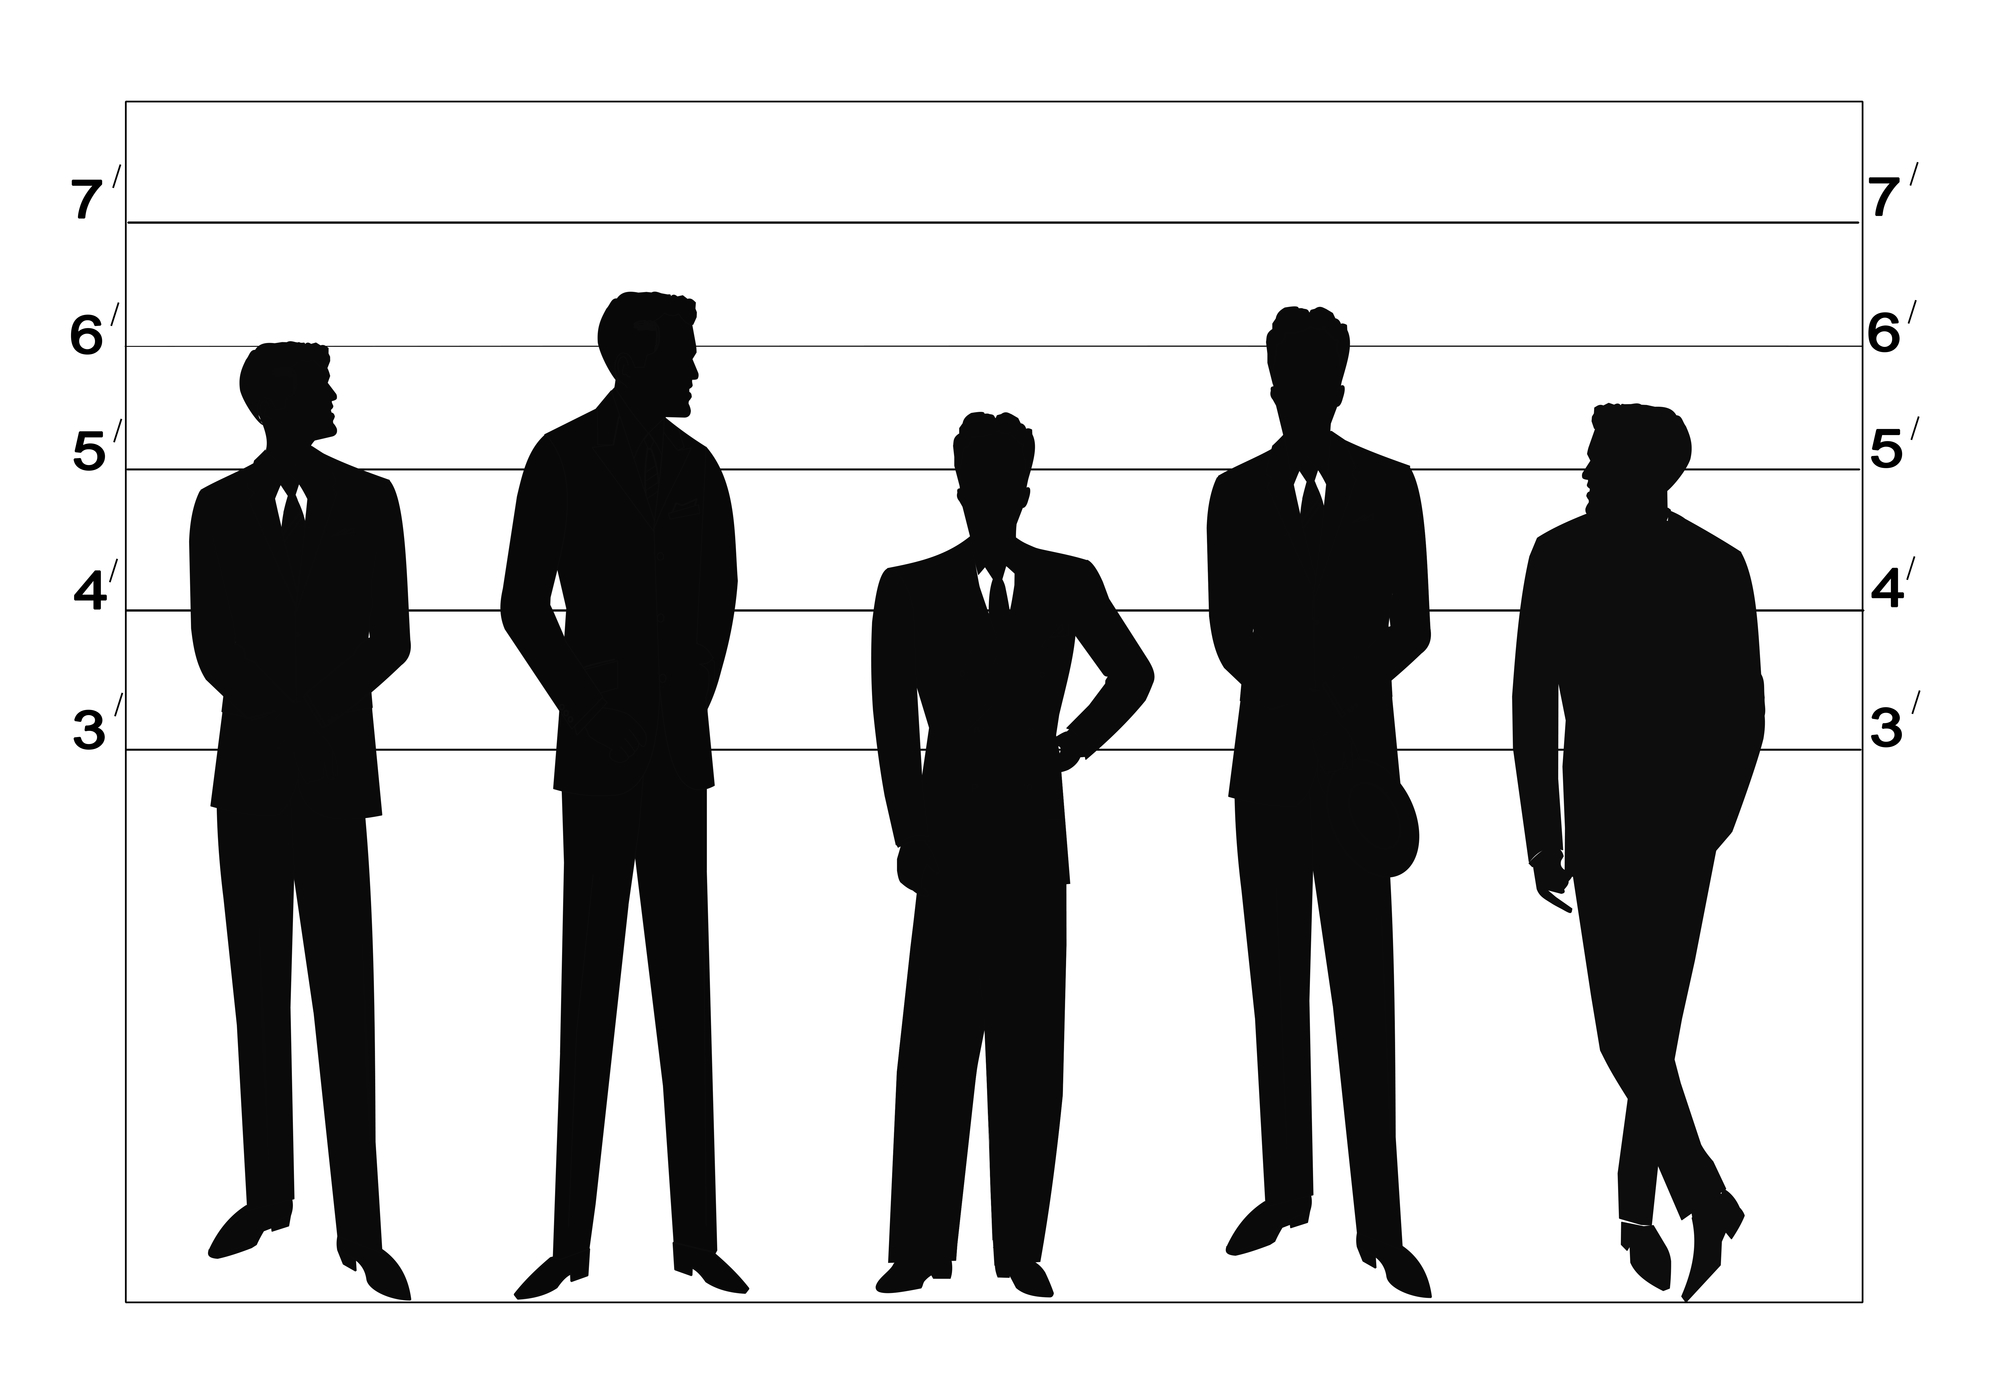 Why shorter people are at greater risk of diabetes